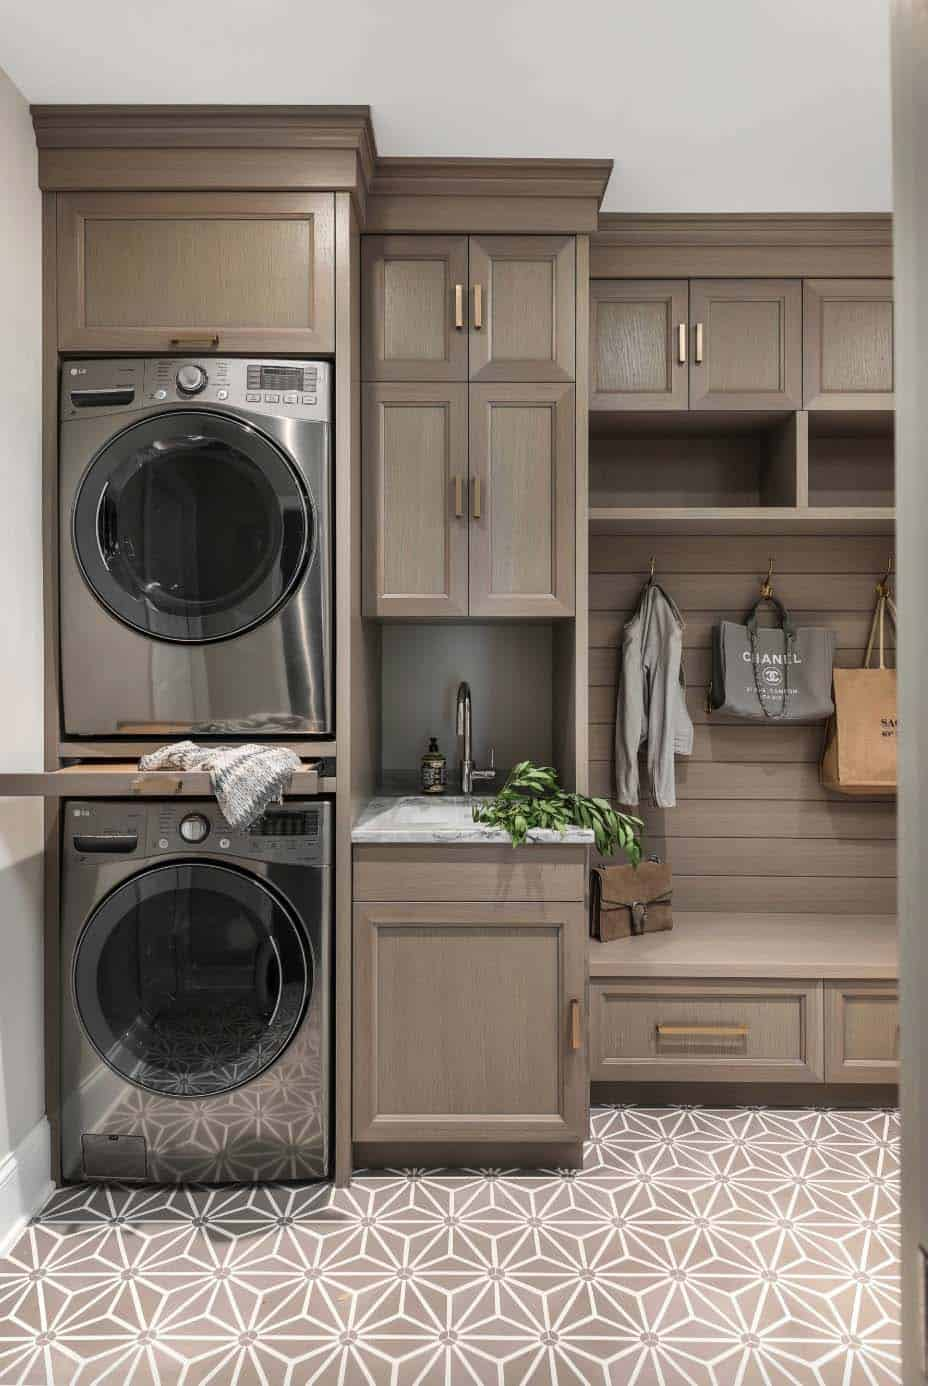 45 Functional And Stylish Laundry Room Design Ideas To Inspire on Laundry Room Decor Ideas  id=31325